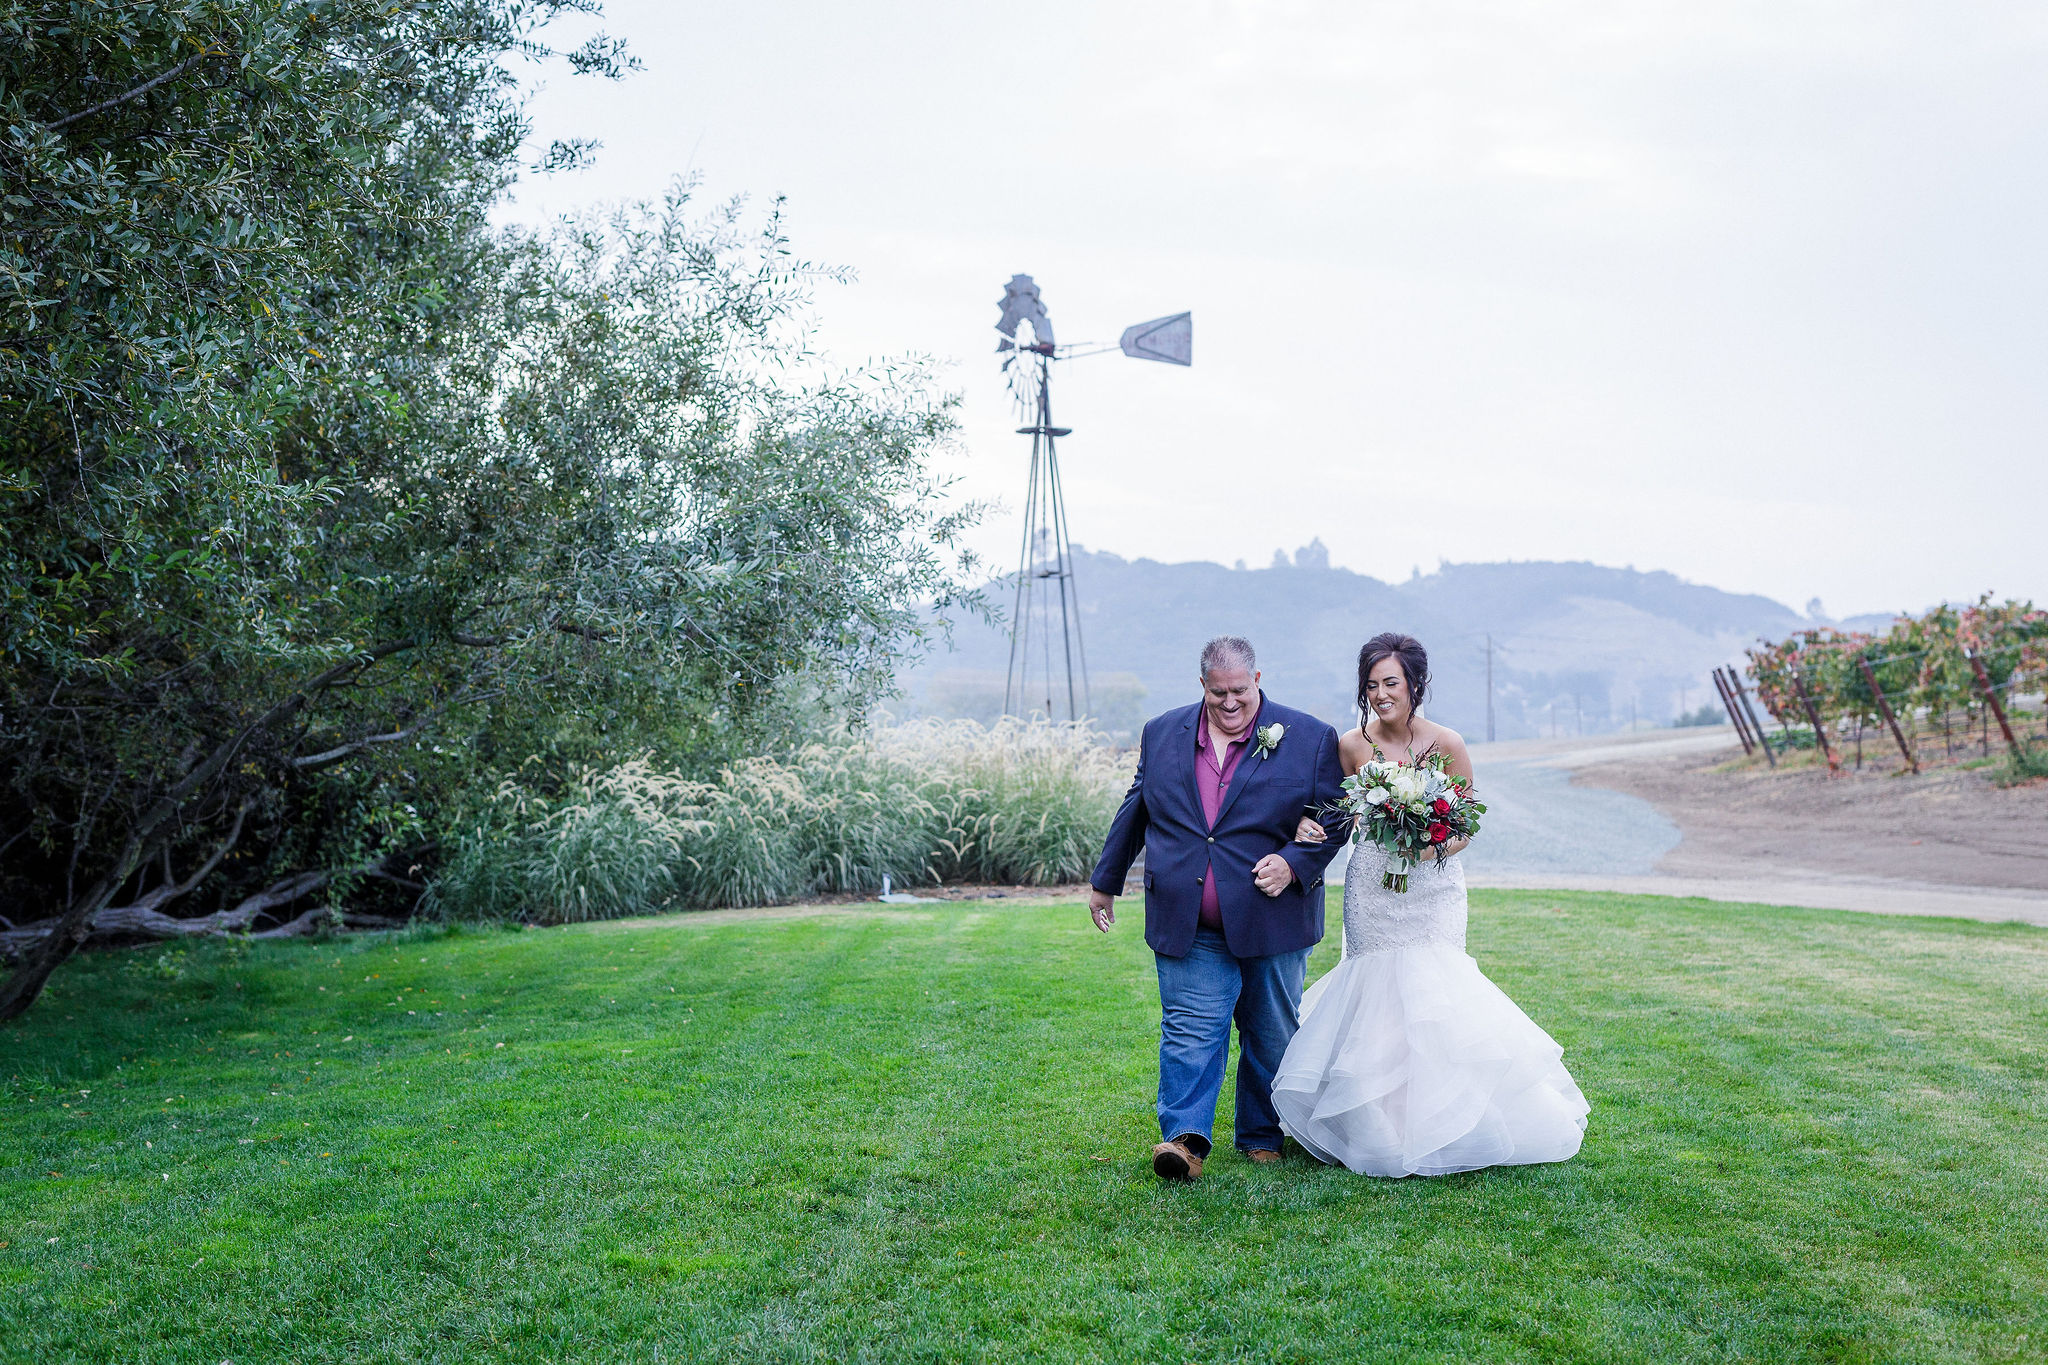 www.santabarbarawedding.com | Kiel Rucker | Greengate Ranch | Kramer Events | De La Fleur Flowers | Bianca's Bridal | Father Walks Daughter to Ceremony